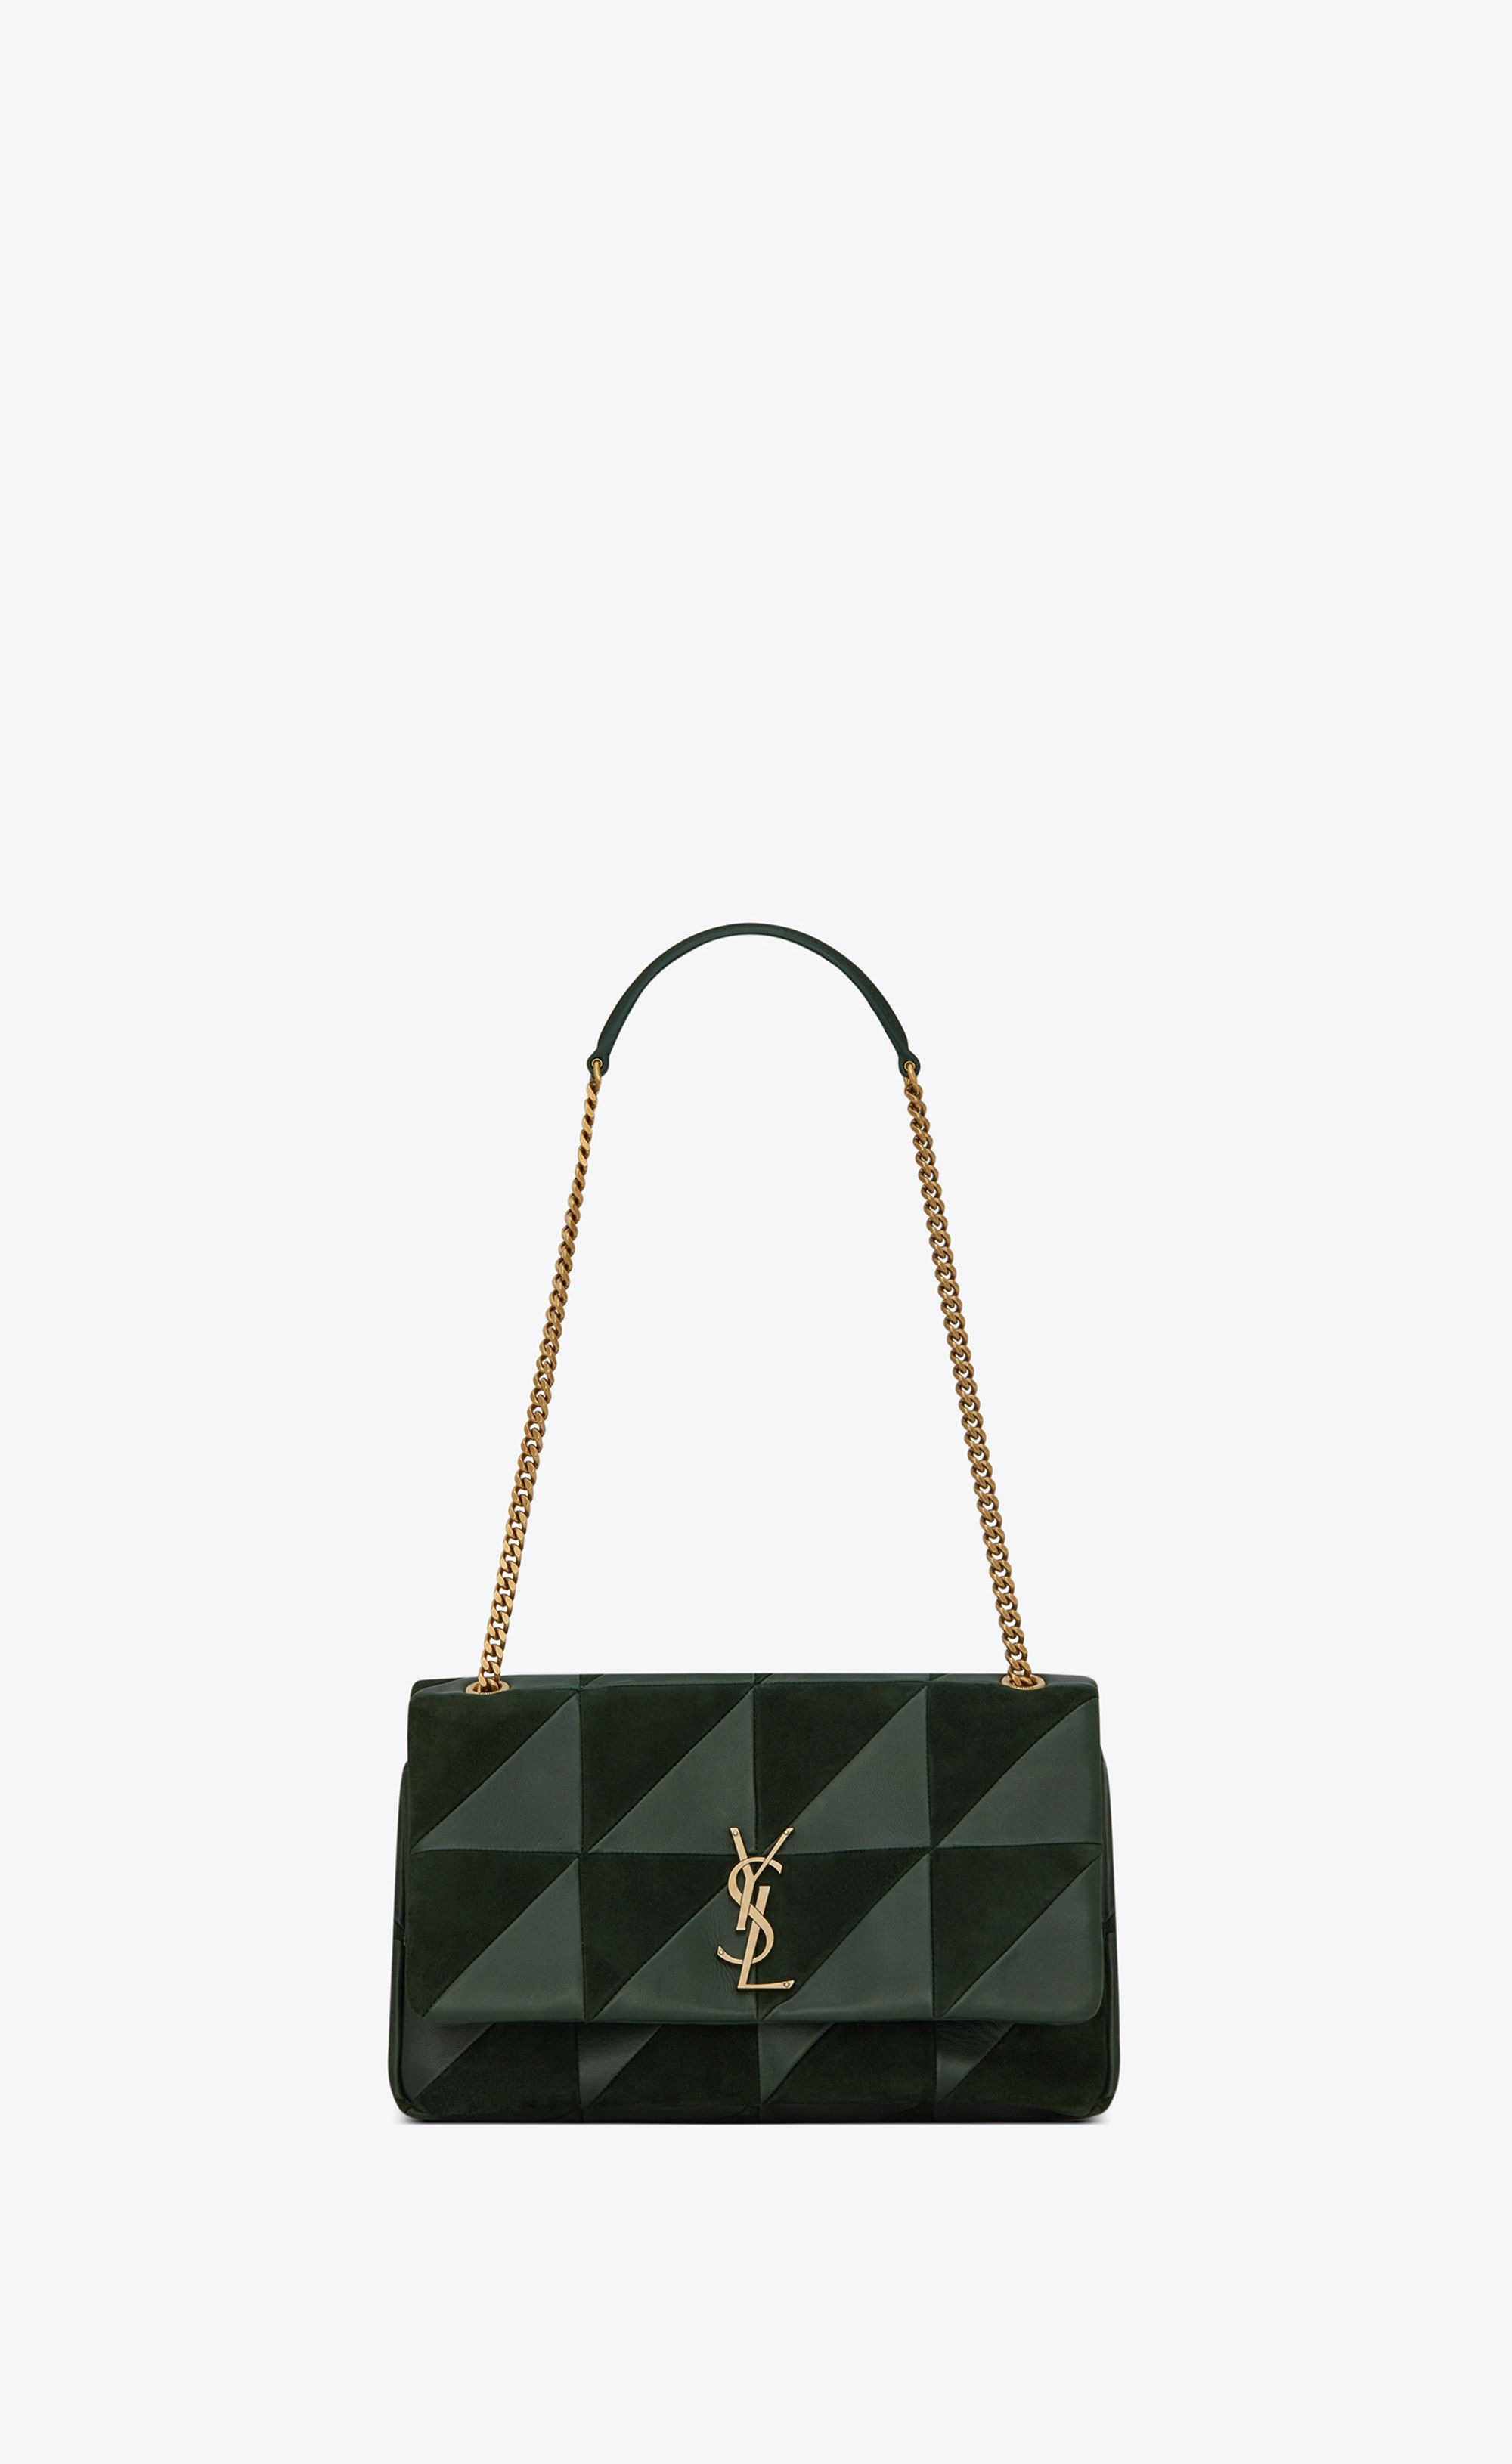 e0d5b76e4639a Saint Laurent Medium Jamie Bag In Dark Green Leather And Suede Patchwork    YSL.com